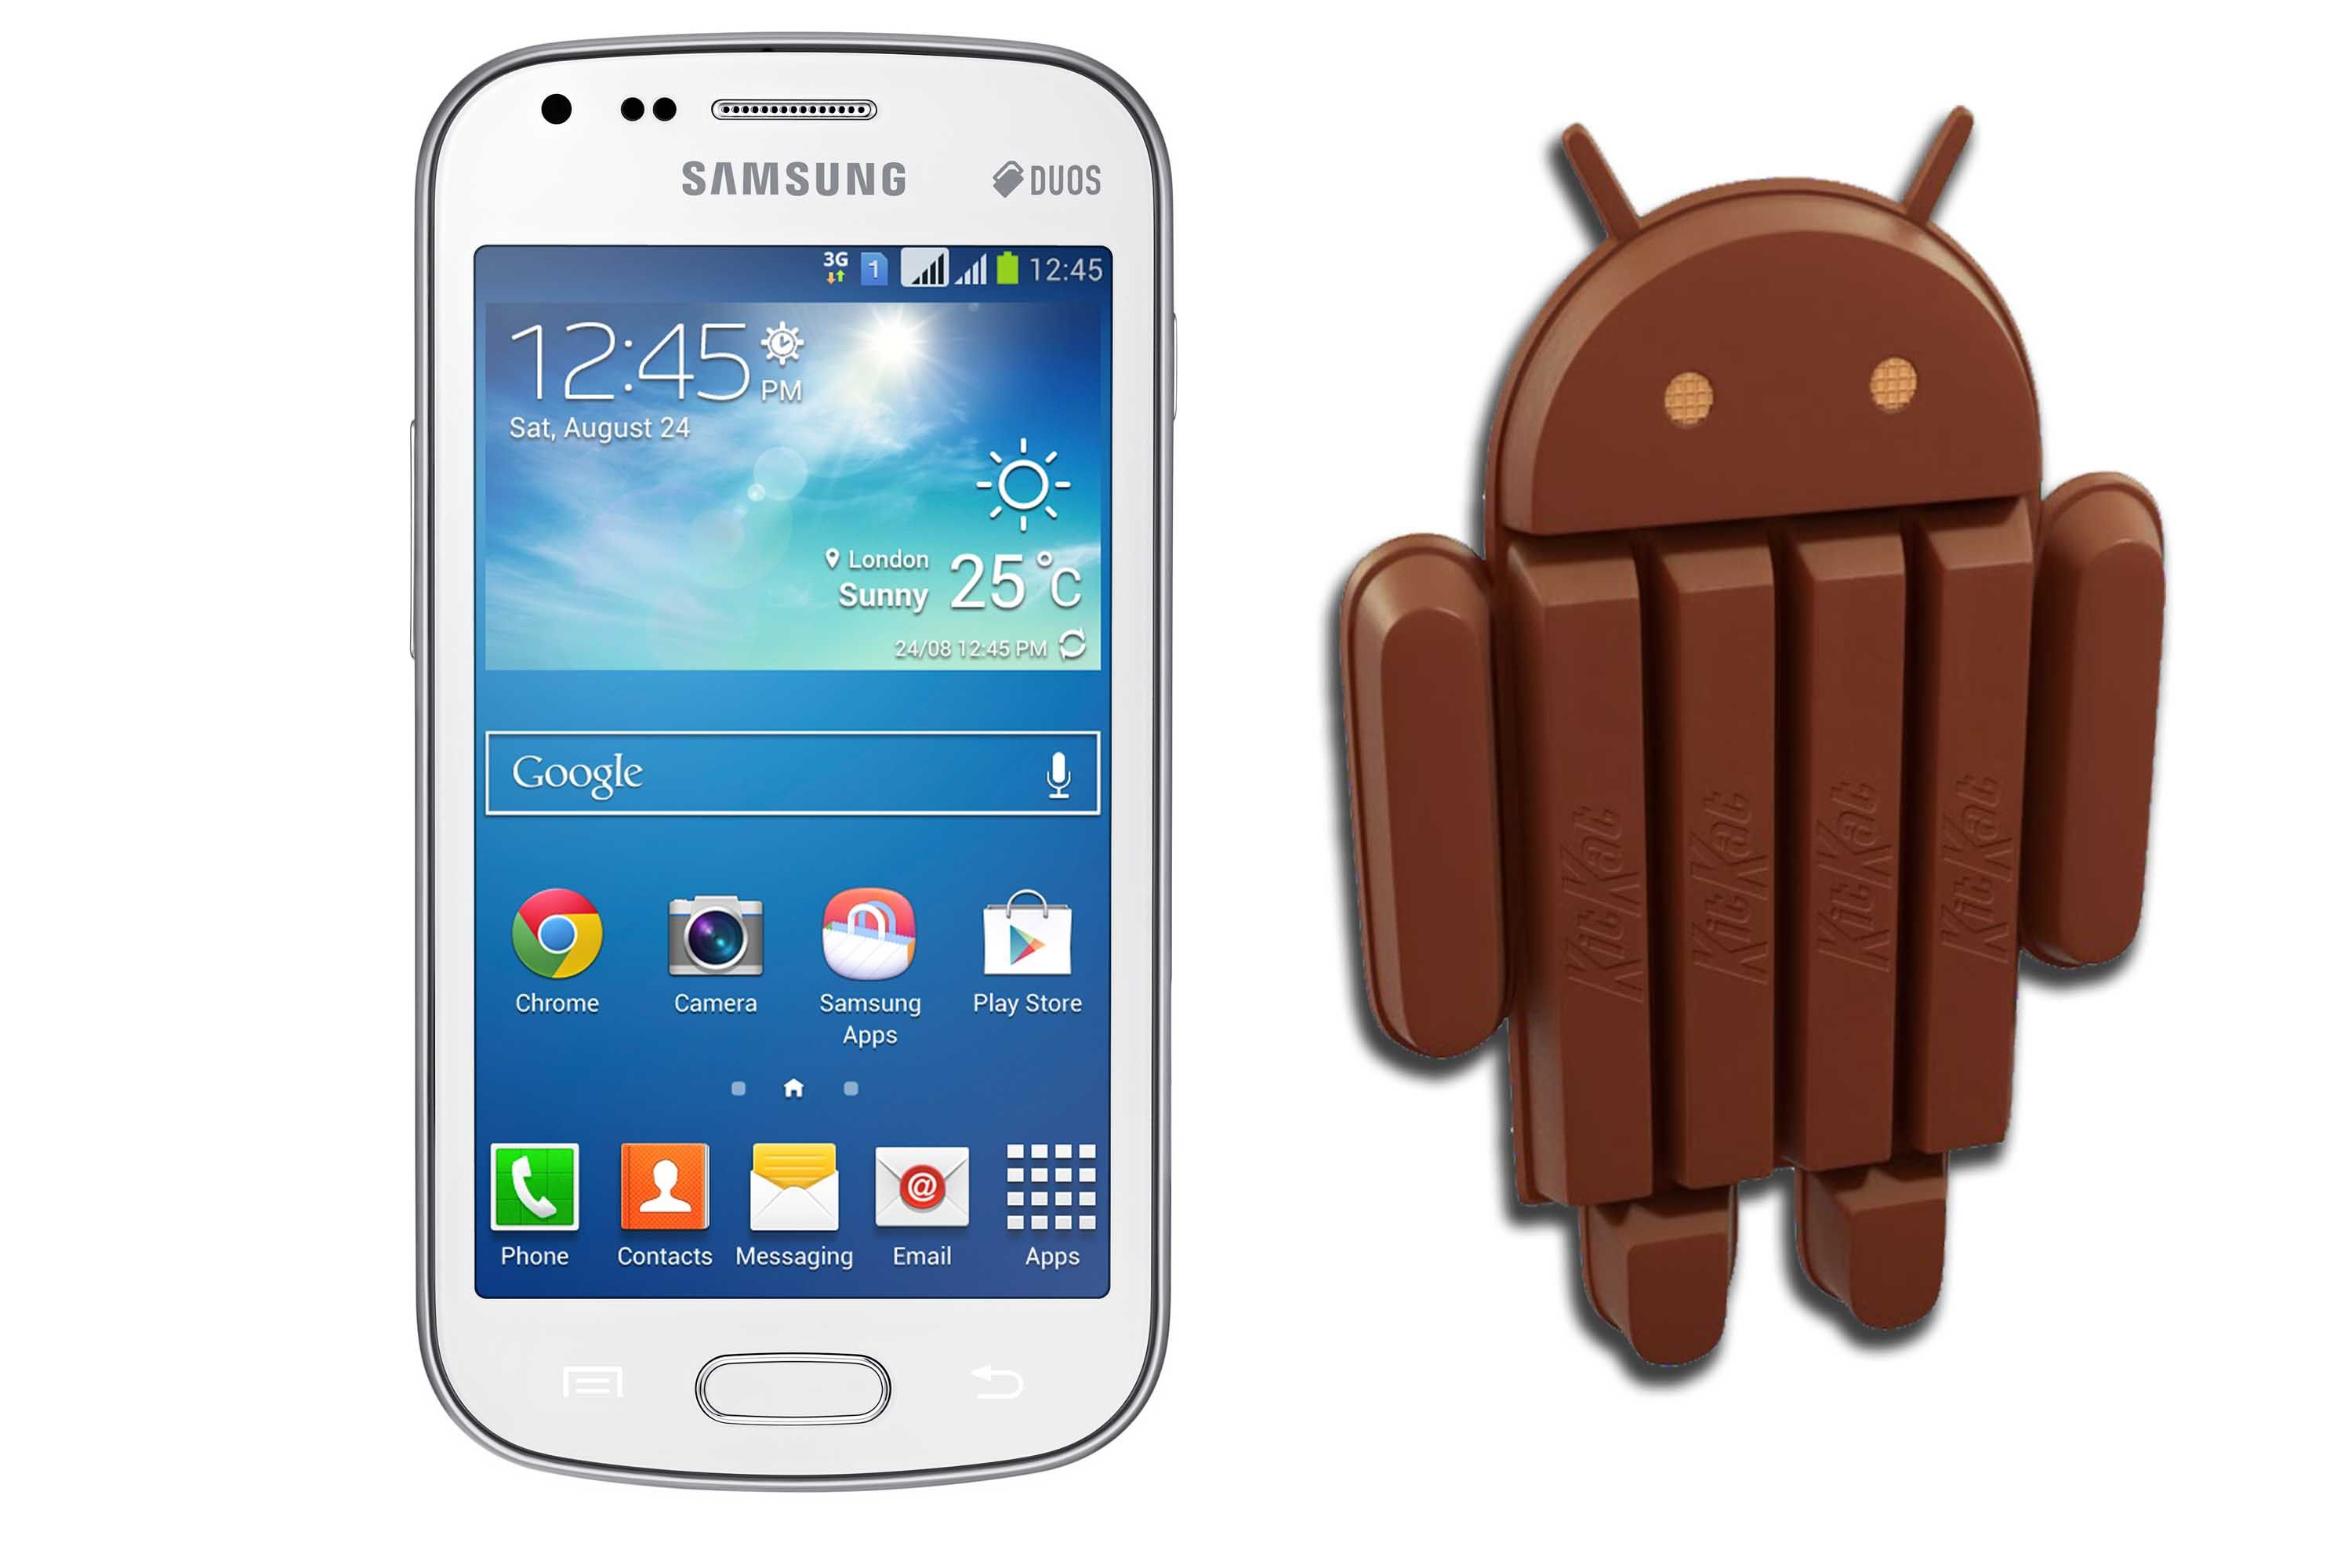 Update Samsung Galaxy S Duos S7562 With Android Kitkat 4.4